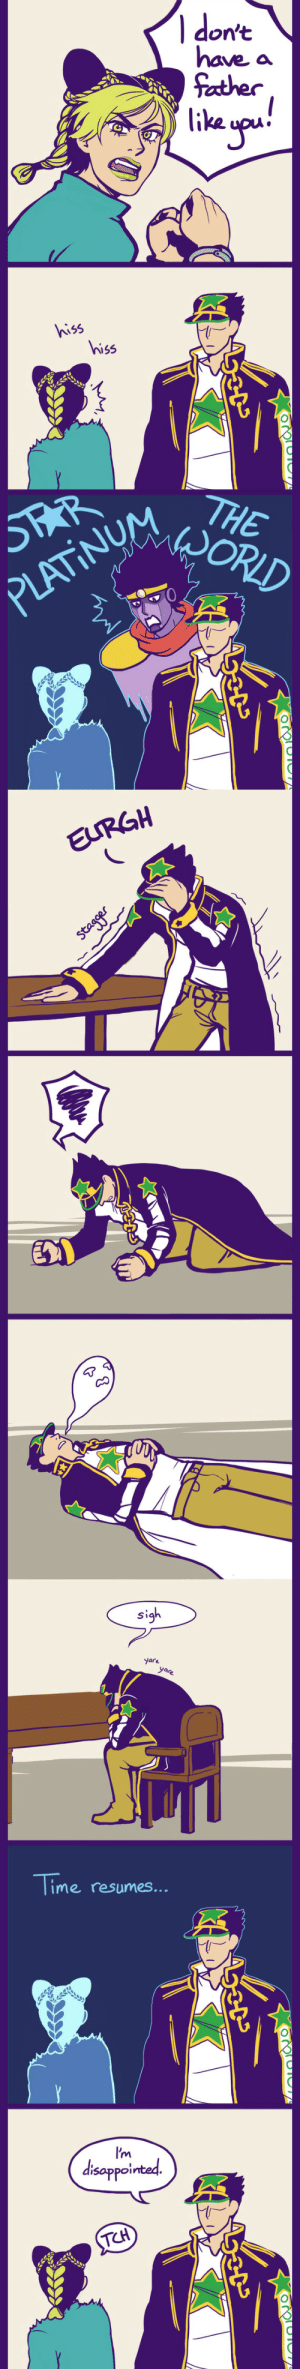 Tumblr, Blog, and Http: don't  have a  father  like uu!  hiss  niss  THE  ORD   EURGH  3   yare  are  ime resumes...  I'm  sappointed.  TCH penstab:  GET WRECKED, JOTARO